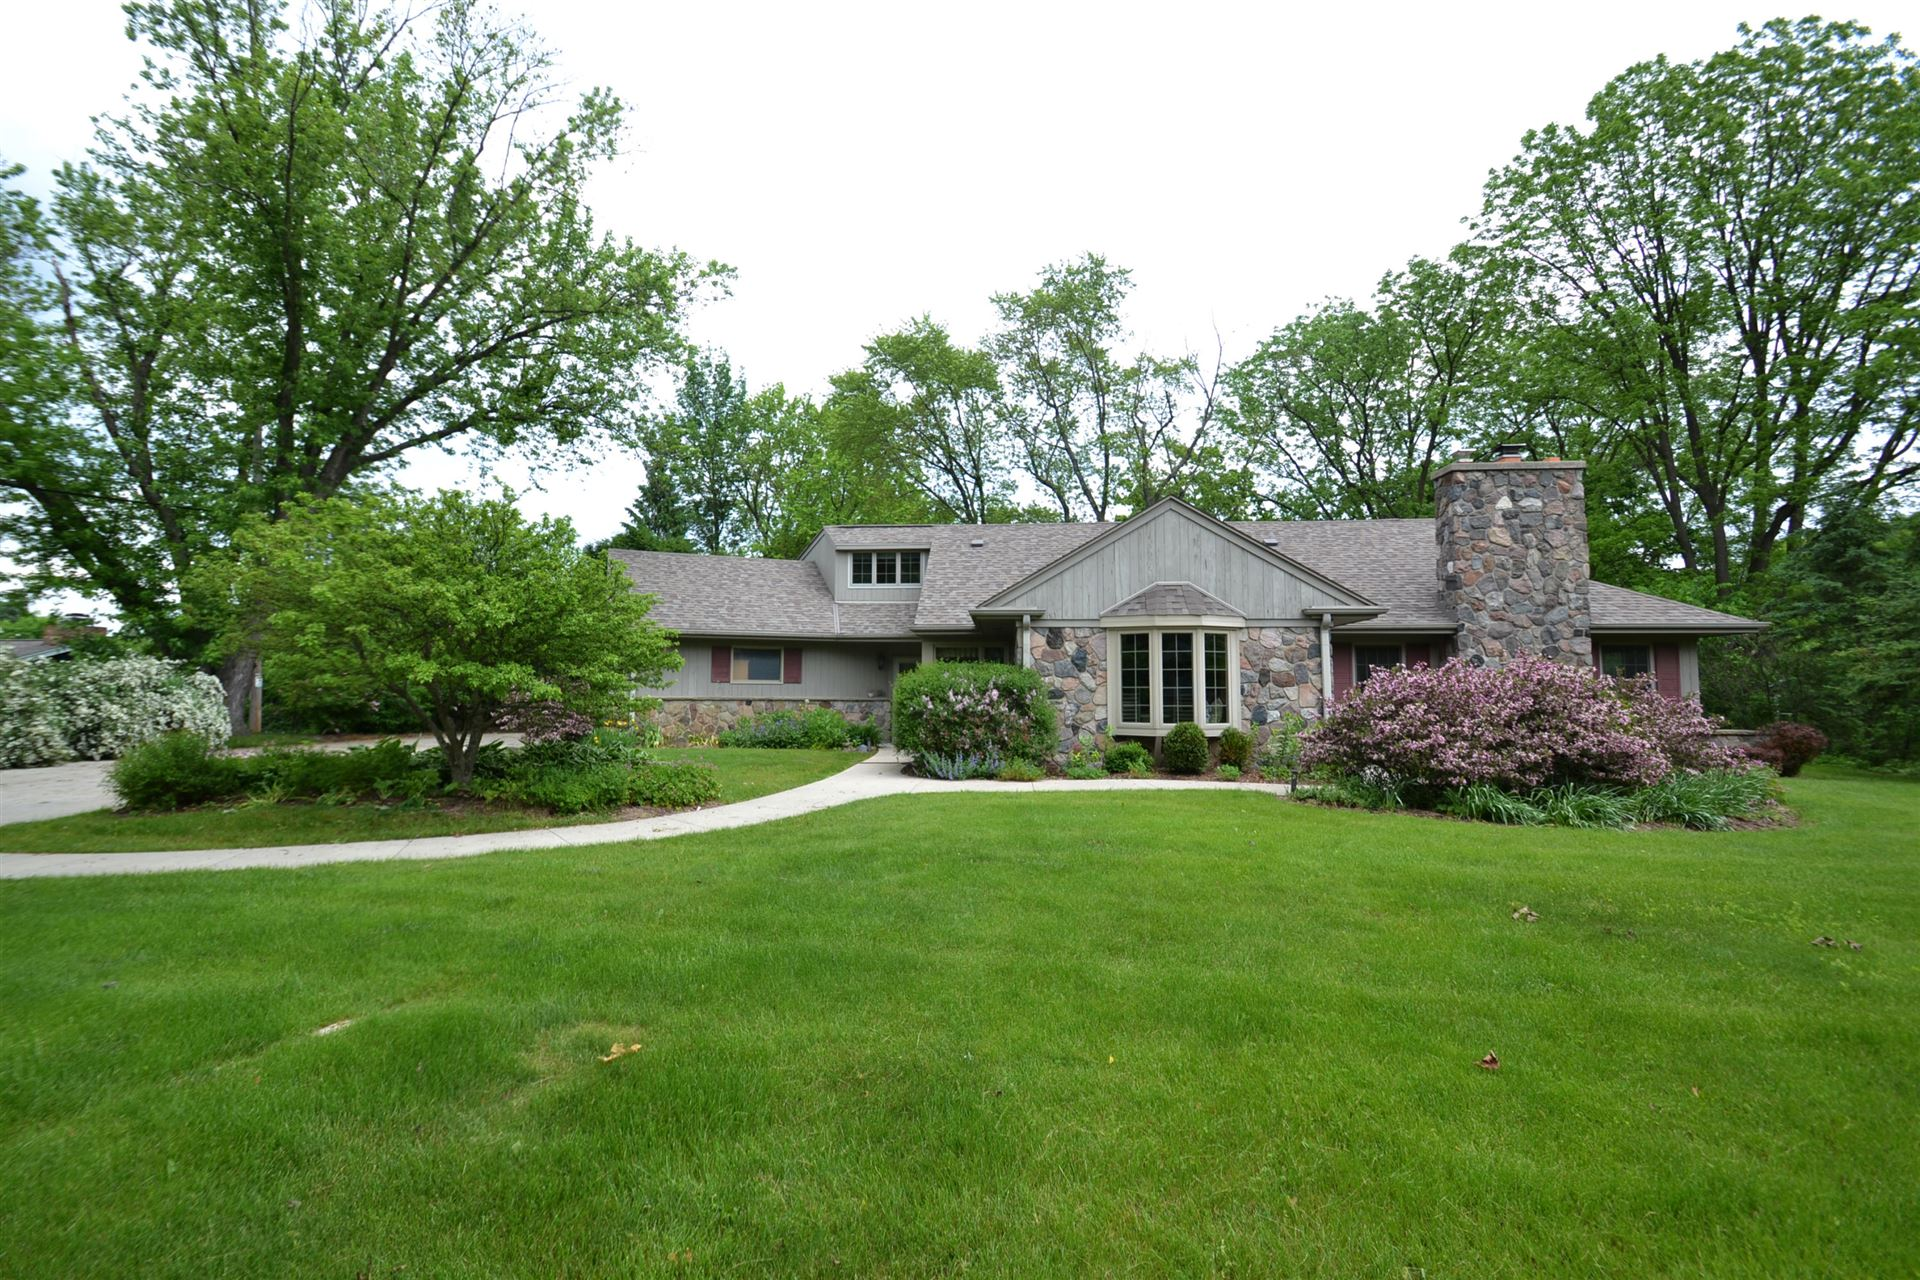 1420 Countryside Ln, Brookfield, WI 53045 - #: 1691265